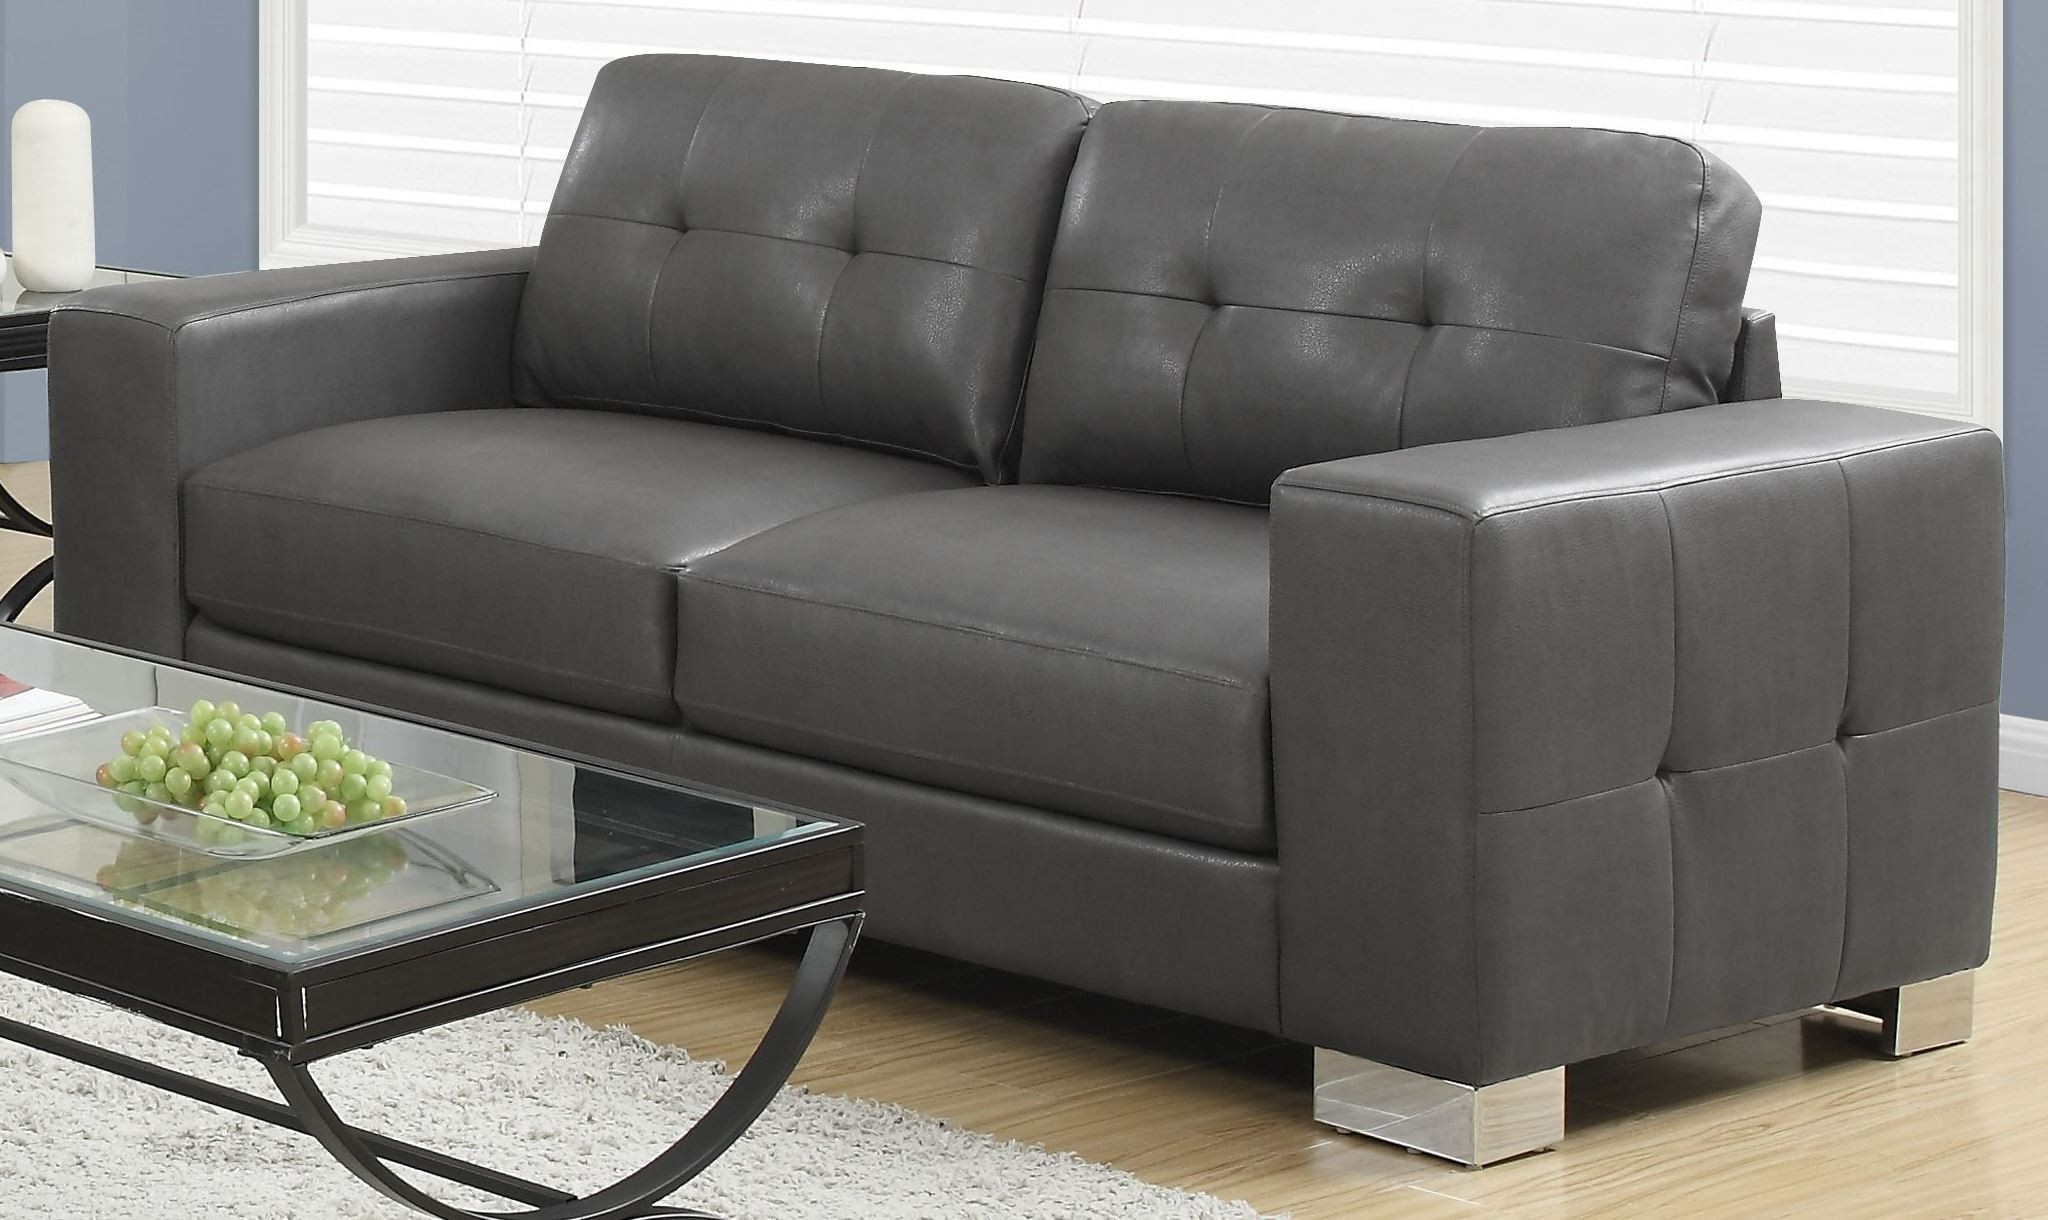 Most Popular Gray Sofas Pertaining To 8223gy Charcoal Gray Bonded Leather Sofa From Monarch (View 11 of 20)